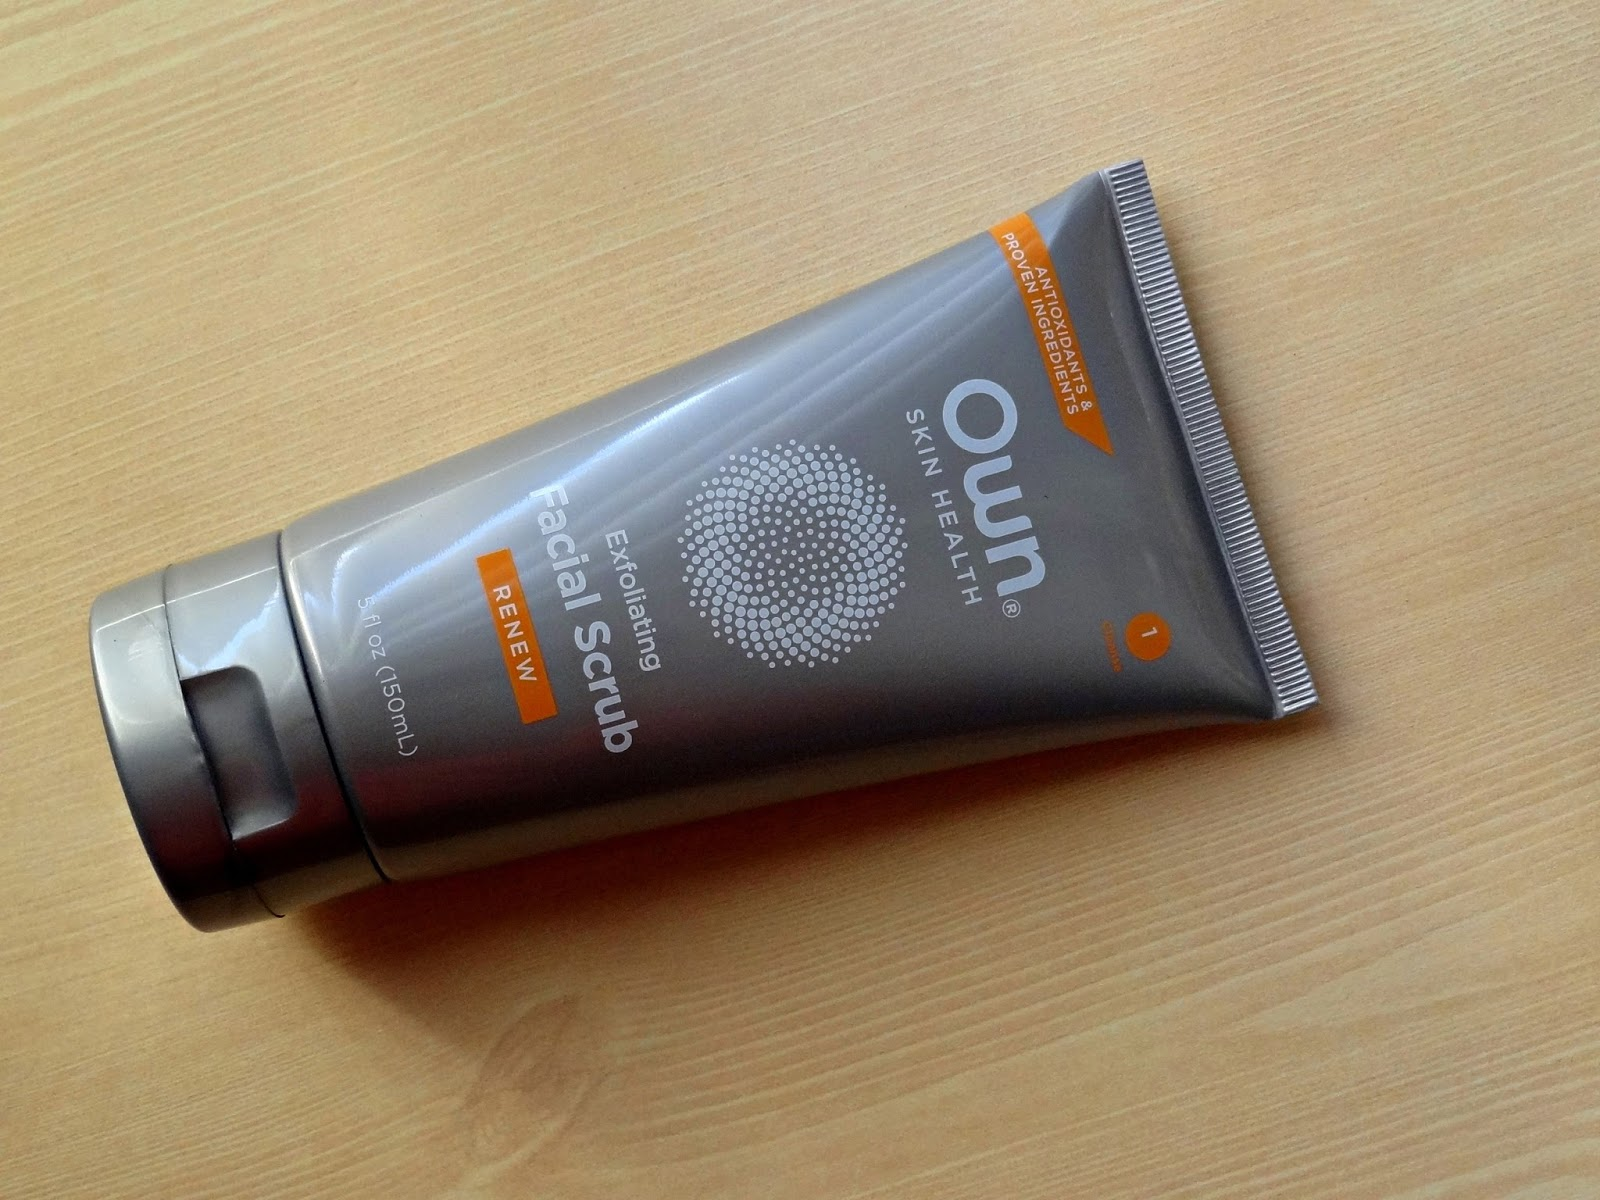 Own Beauty Renew Exfoliating Facial Scrub Review, Photos